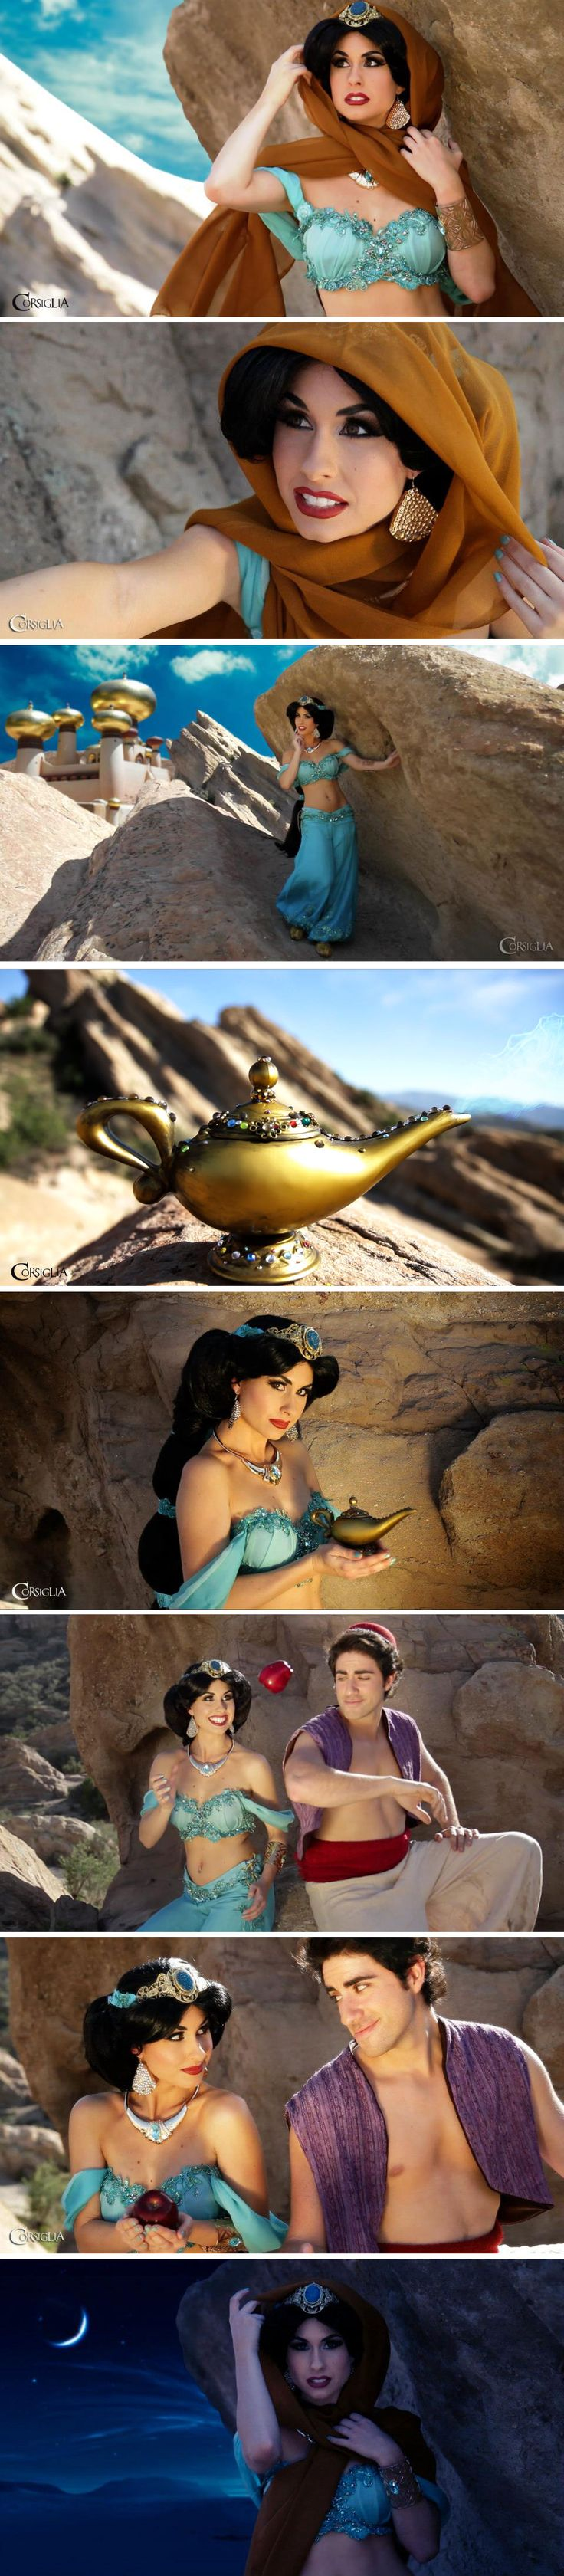 Disney's PRINCESS JASMINE cosplay by Traci Hines| she's fantastic!